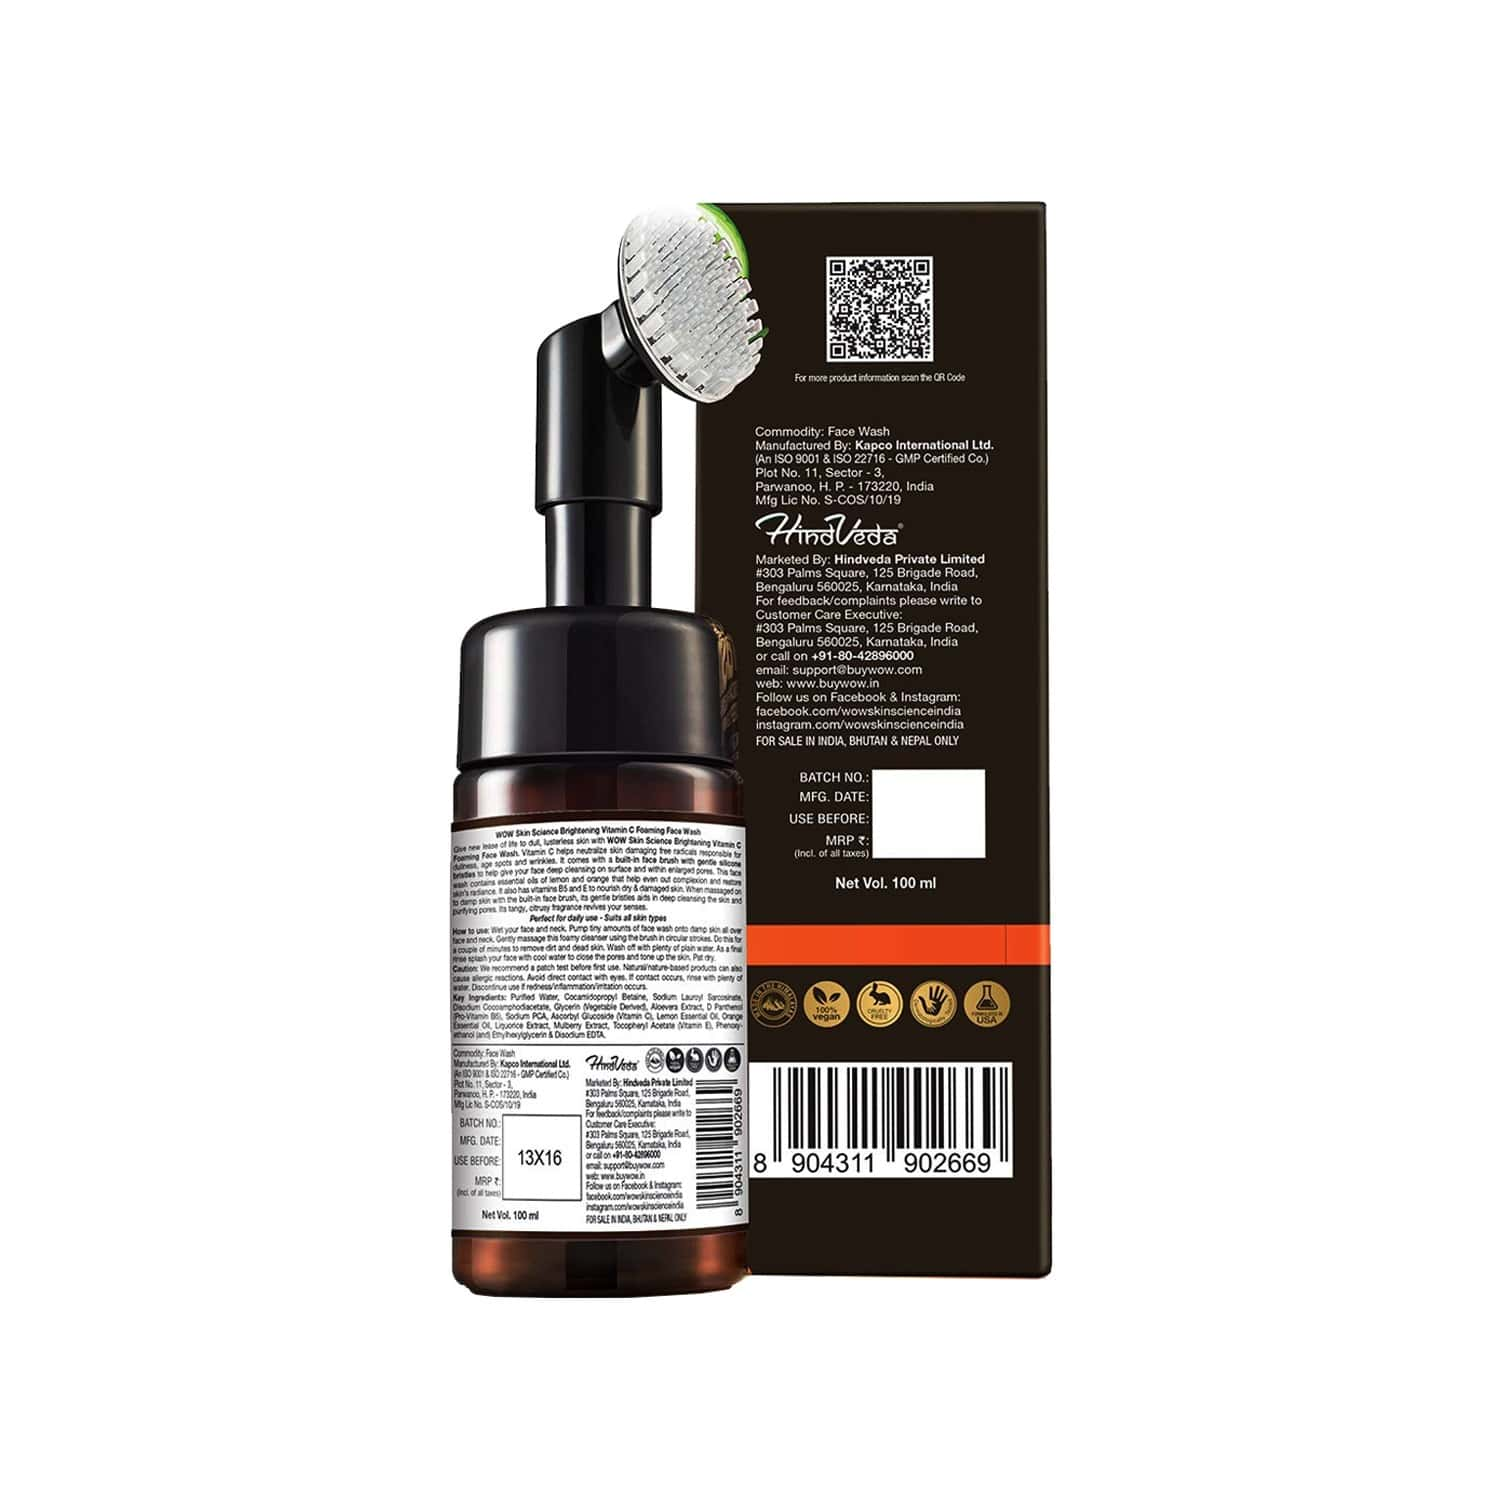 Wow Skin Science Vitamin C Foaming Face Wash (with Brush ) - 100ml